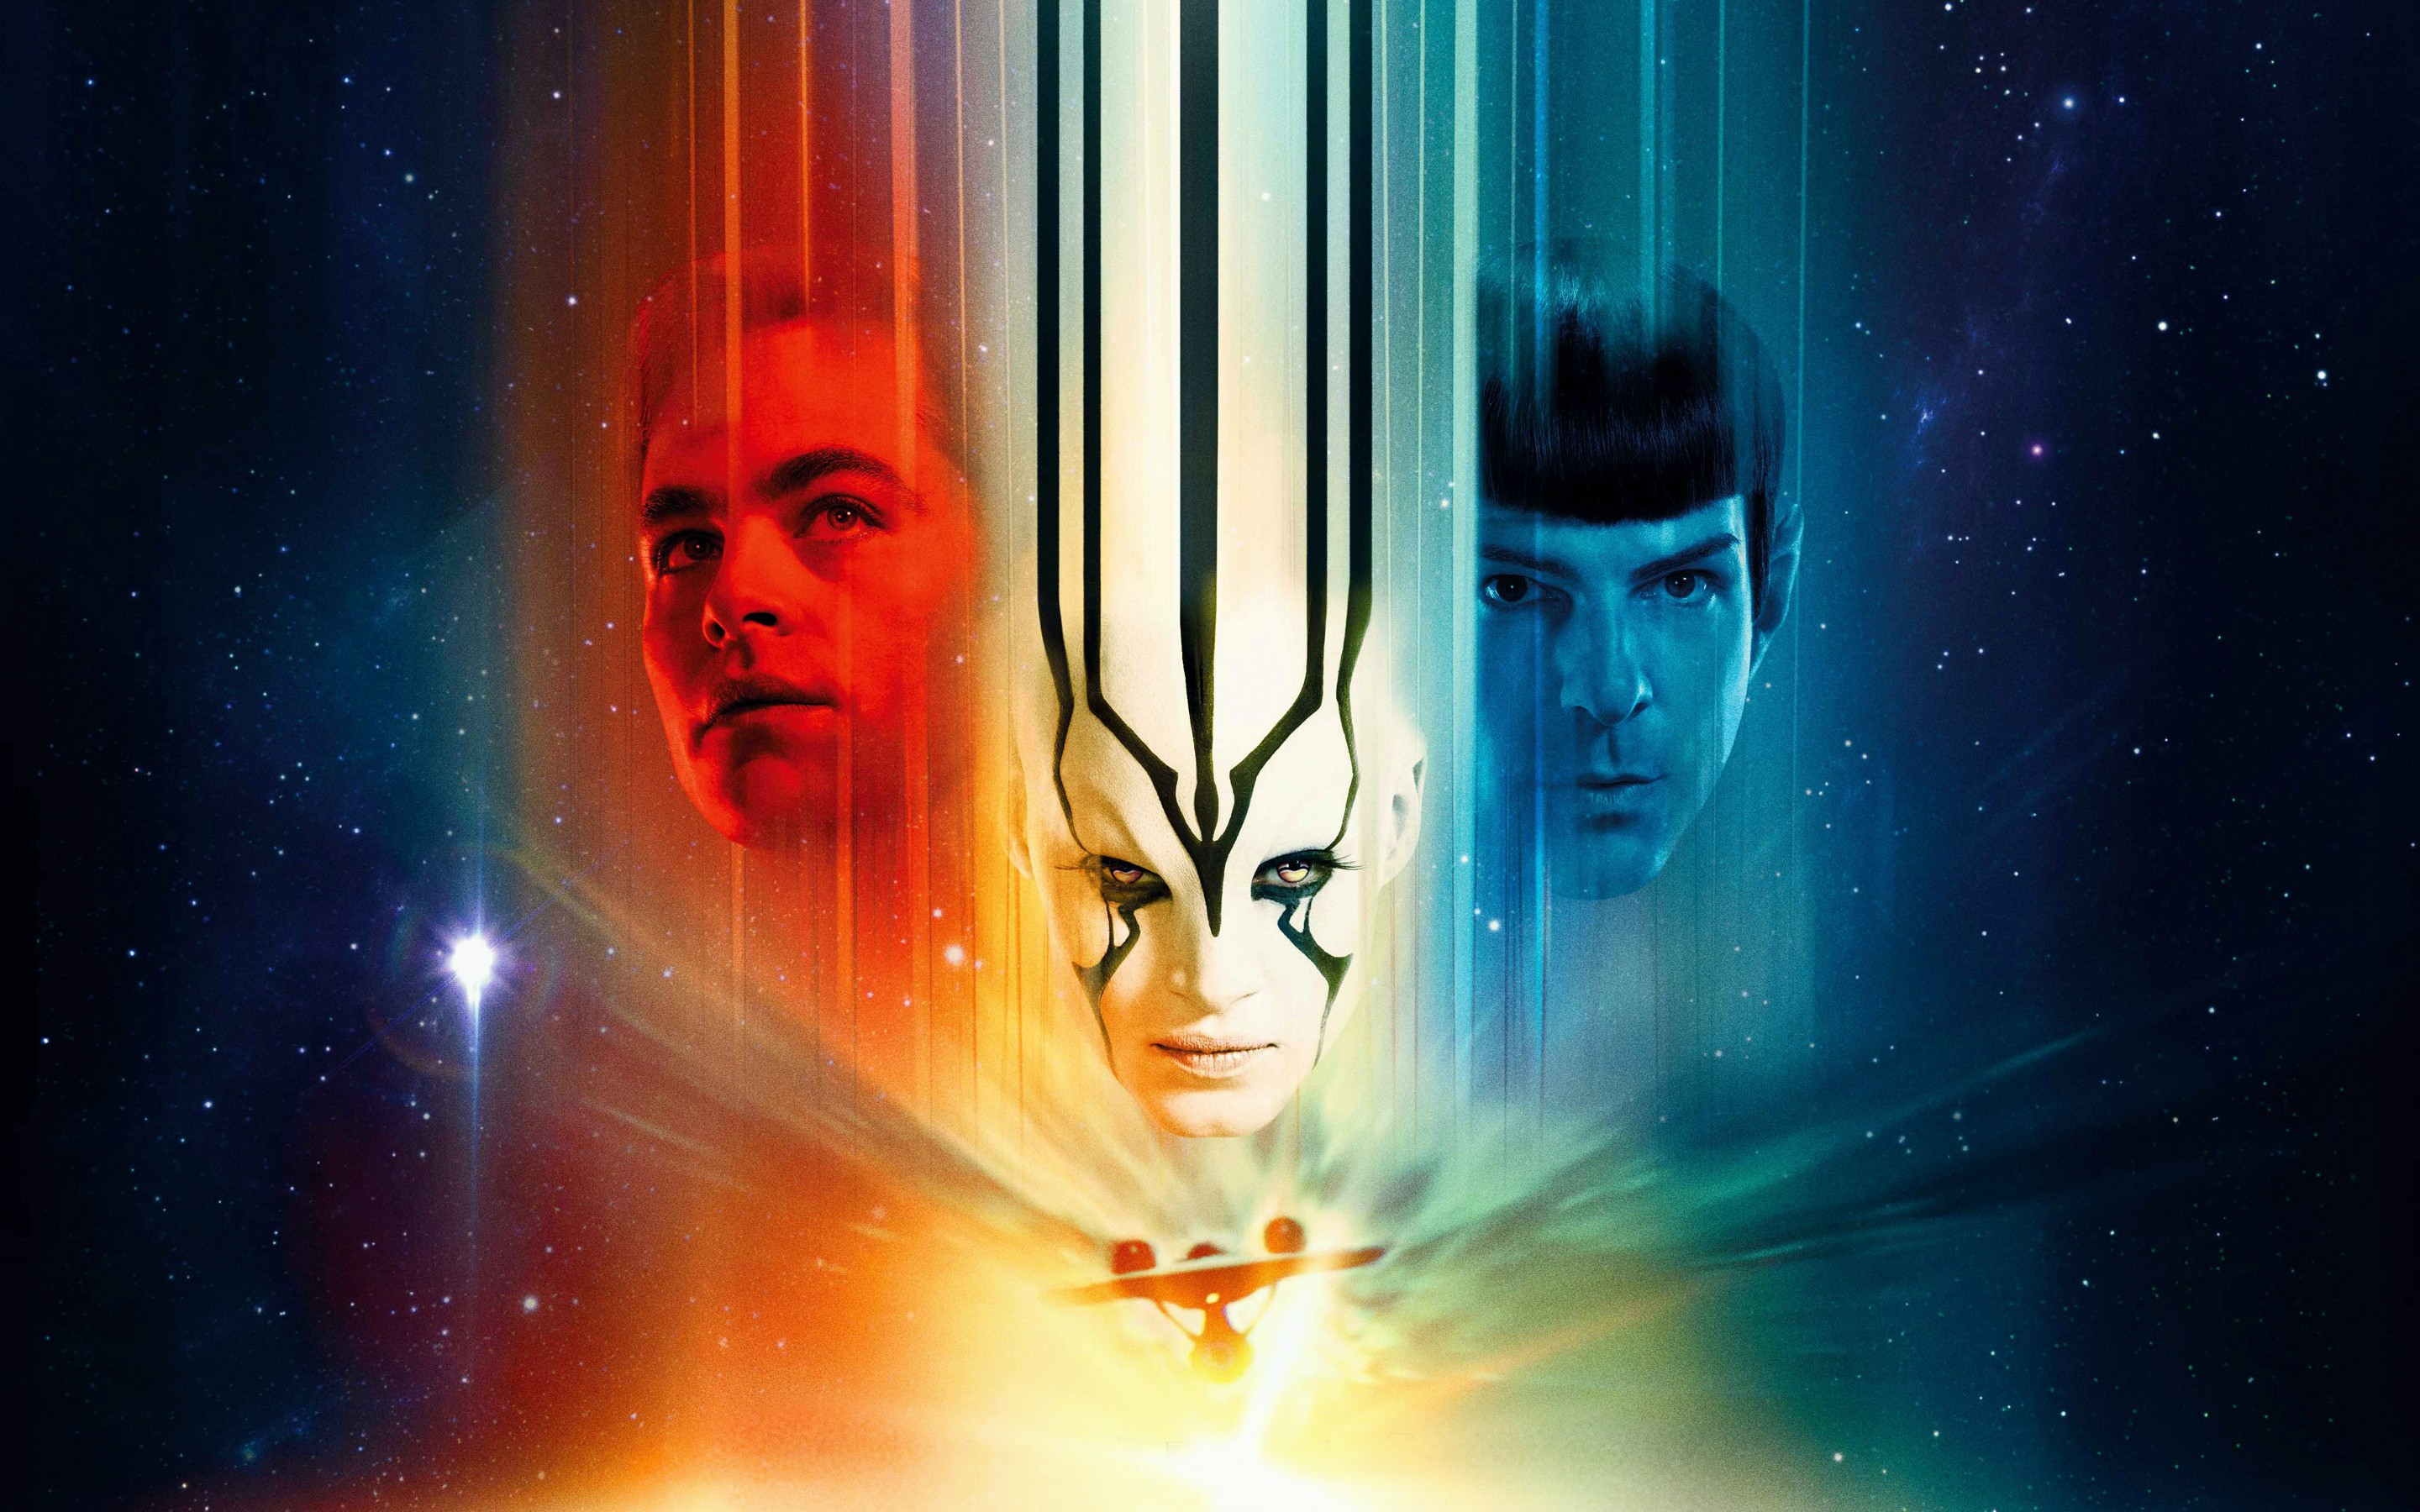 star trek beyond wallpaper ·① download free awesome high resolution